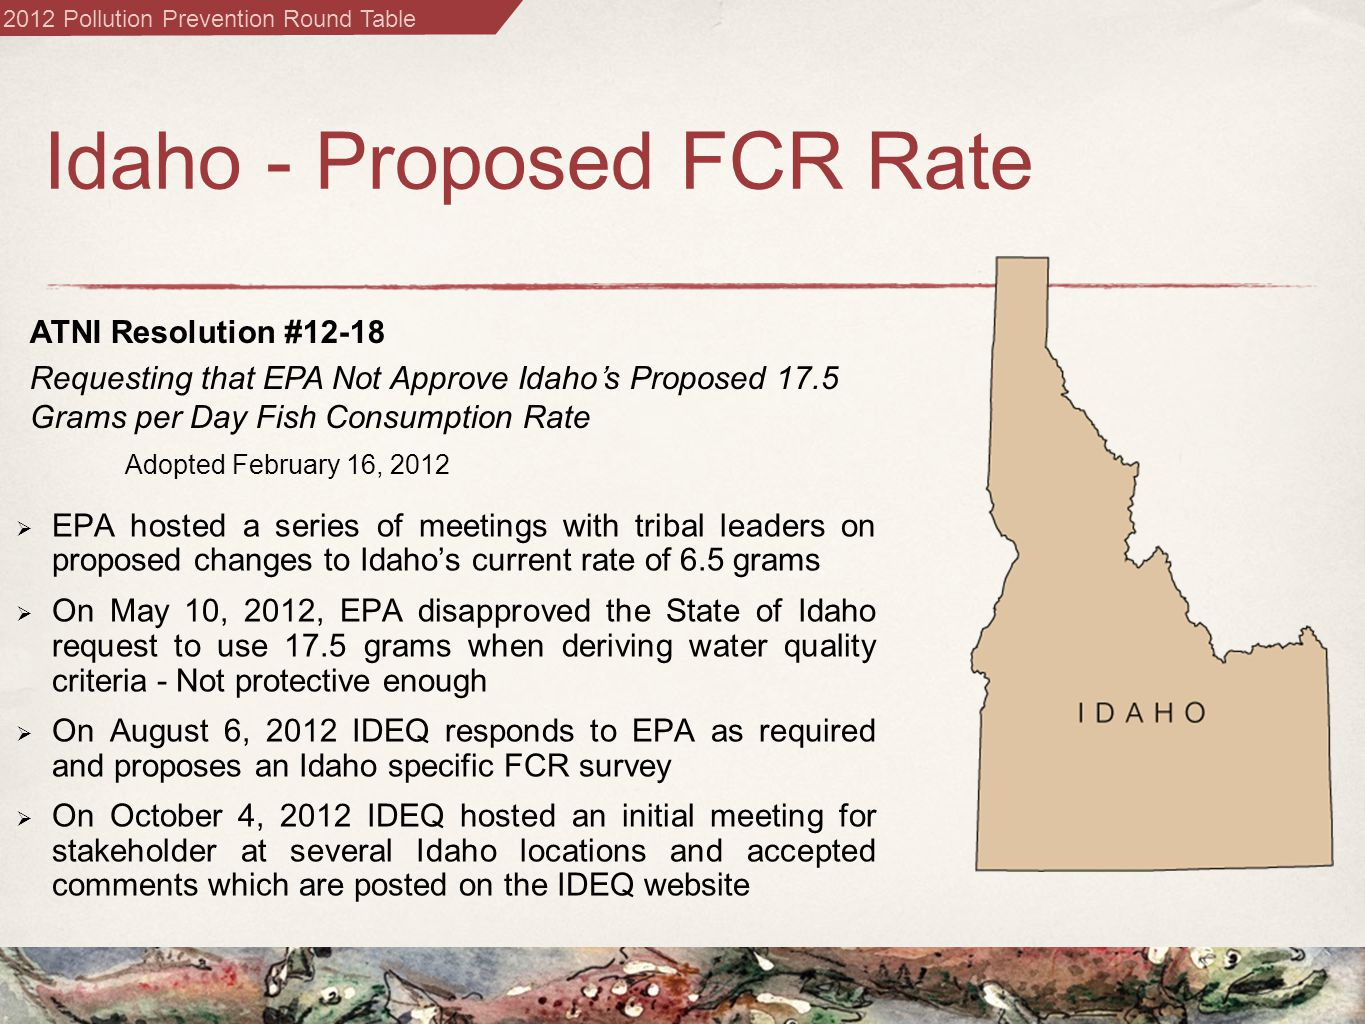 2012 Pollution Prevention Round Table Idaho - Proposed FCR Rate  EPA hosted a series of meetings with tribal leaders on proposed changes to Idaho's current rate of 6.5 grams  On May 10, 2012, EPA disapproved the State of Idaho request to use 17.5 grams when deriving water quality criteria - Not protective enough  On August 6, 2012 IDEQ responds to EPA as required and proposes an Idaho specific FCR survey  On October 4, 2012 IDEQ hosted an initial meeting for stakeholder at several Idaho locations and accepted comments which are posted on the IDEQ website ATNI Resolution #12-18 Requesting that EPA Not Approve Idaho's Proposed 17.5 Grams per Day Fish Consumption Rate Adopted February 16, 2012